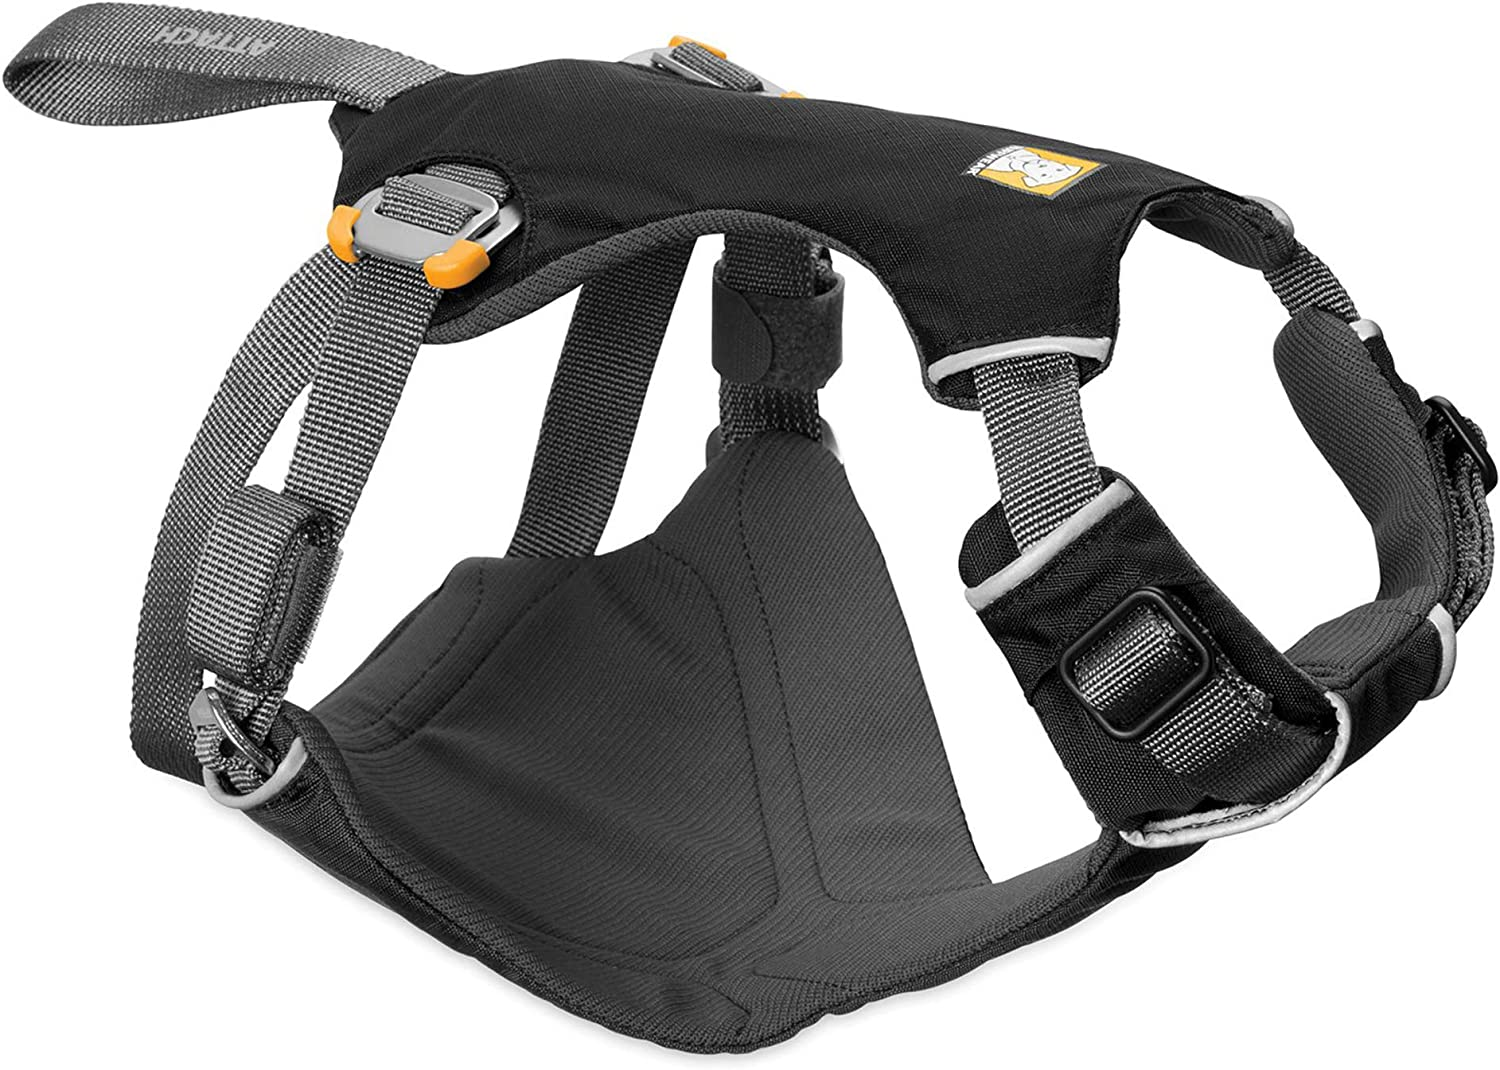 RUFFWEAR - Load Up, Dog Car Harness with Strength-Rated Hardware, Secure Vehicle Restraint, Universal Seat Belt Attachment